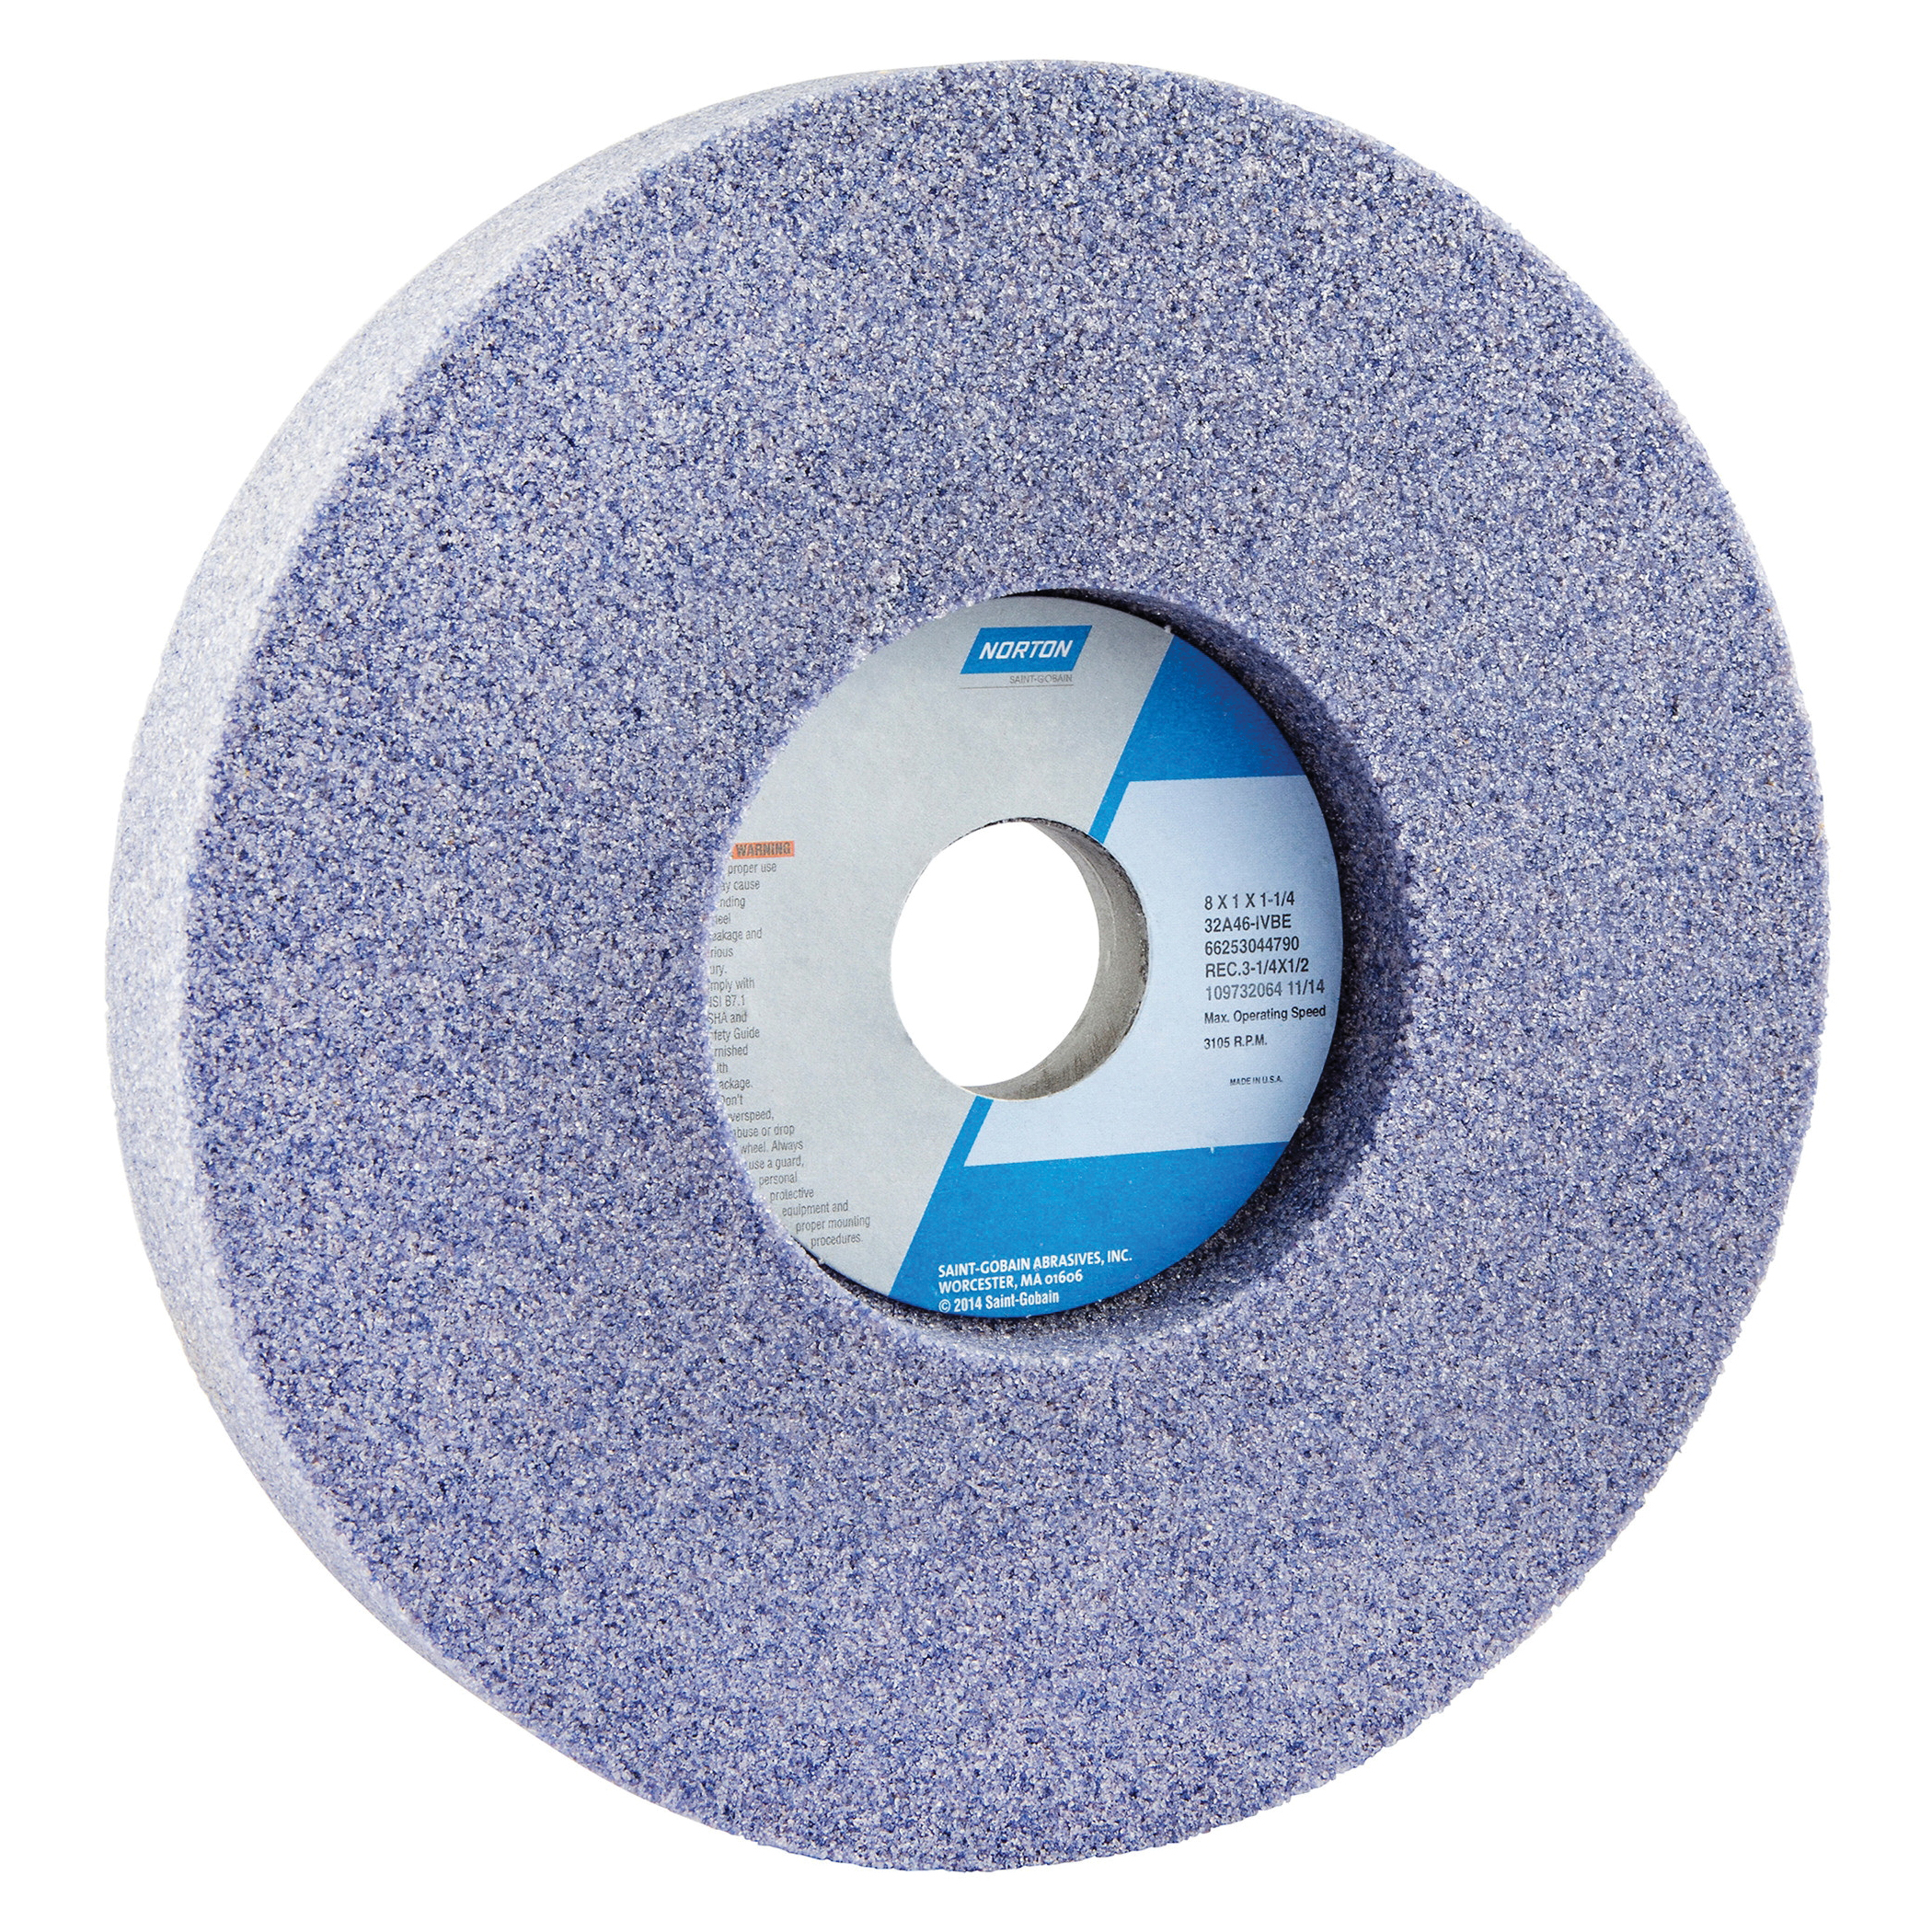 Norton® 66253044790 32A 1-Side Recessed Toolroom Wheel, 8 in Dia x 1 in THK, 1-1/4 in Center Hole, 46 Grit, Aluminum Oxide Abrasive